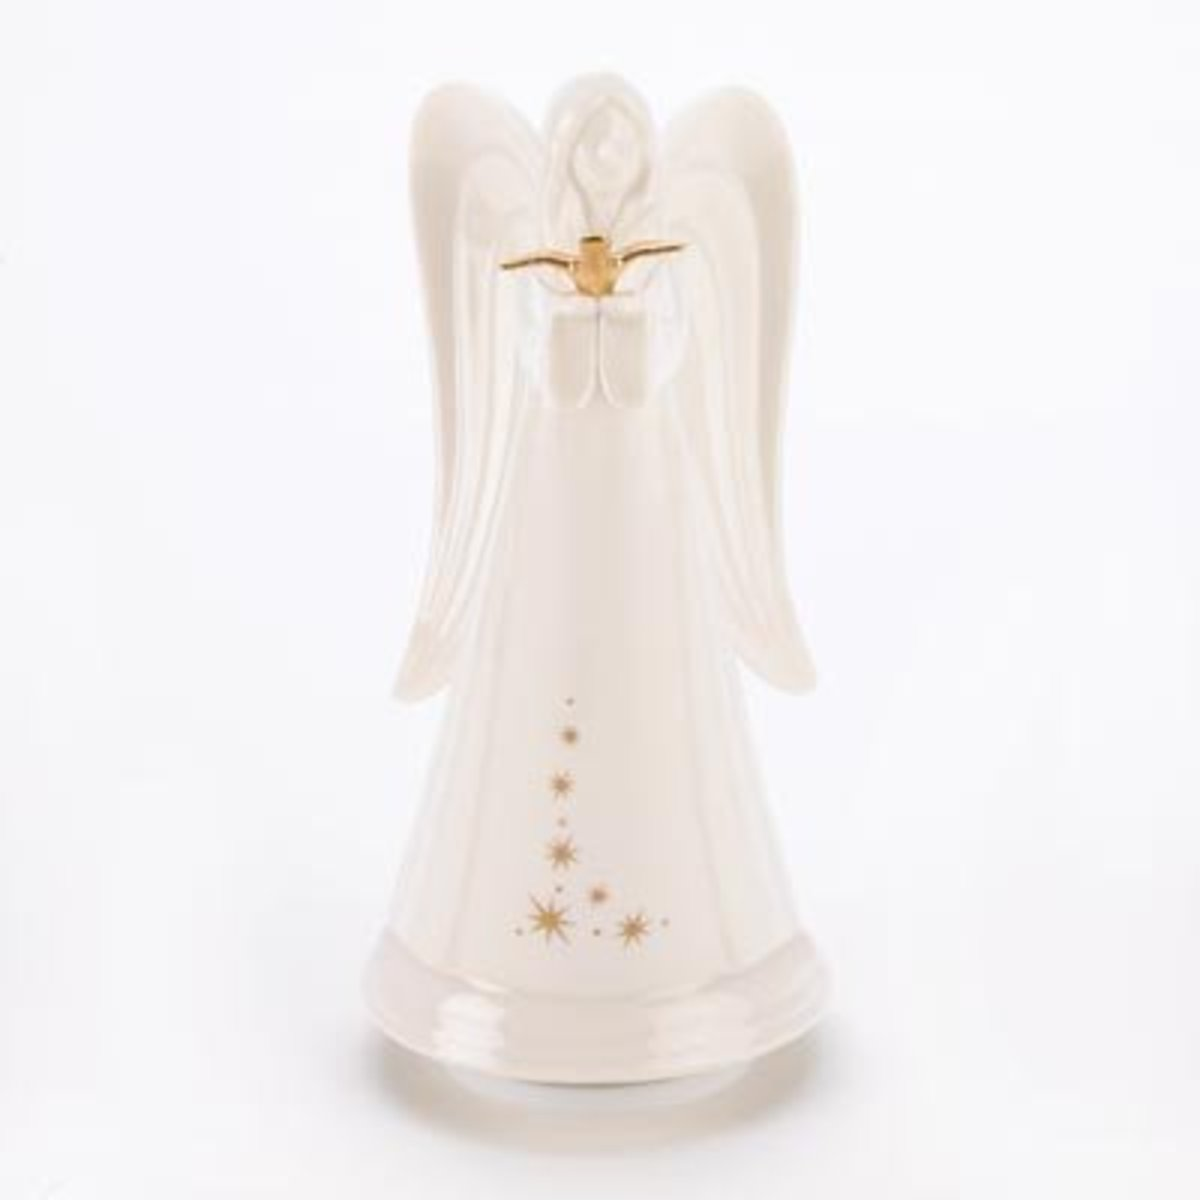 Porcelain Musical Angel Gift from Heaven Available at Amazon.